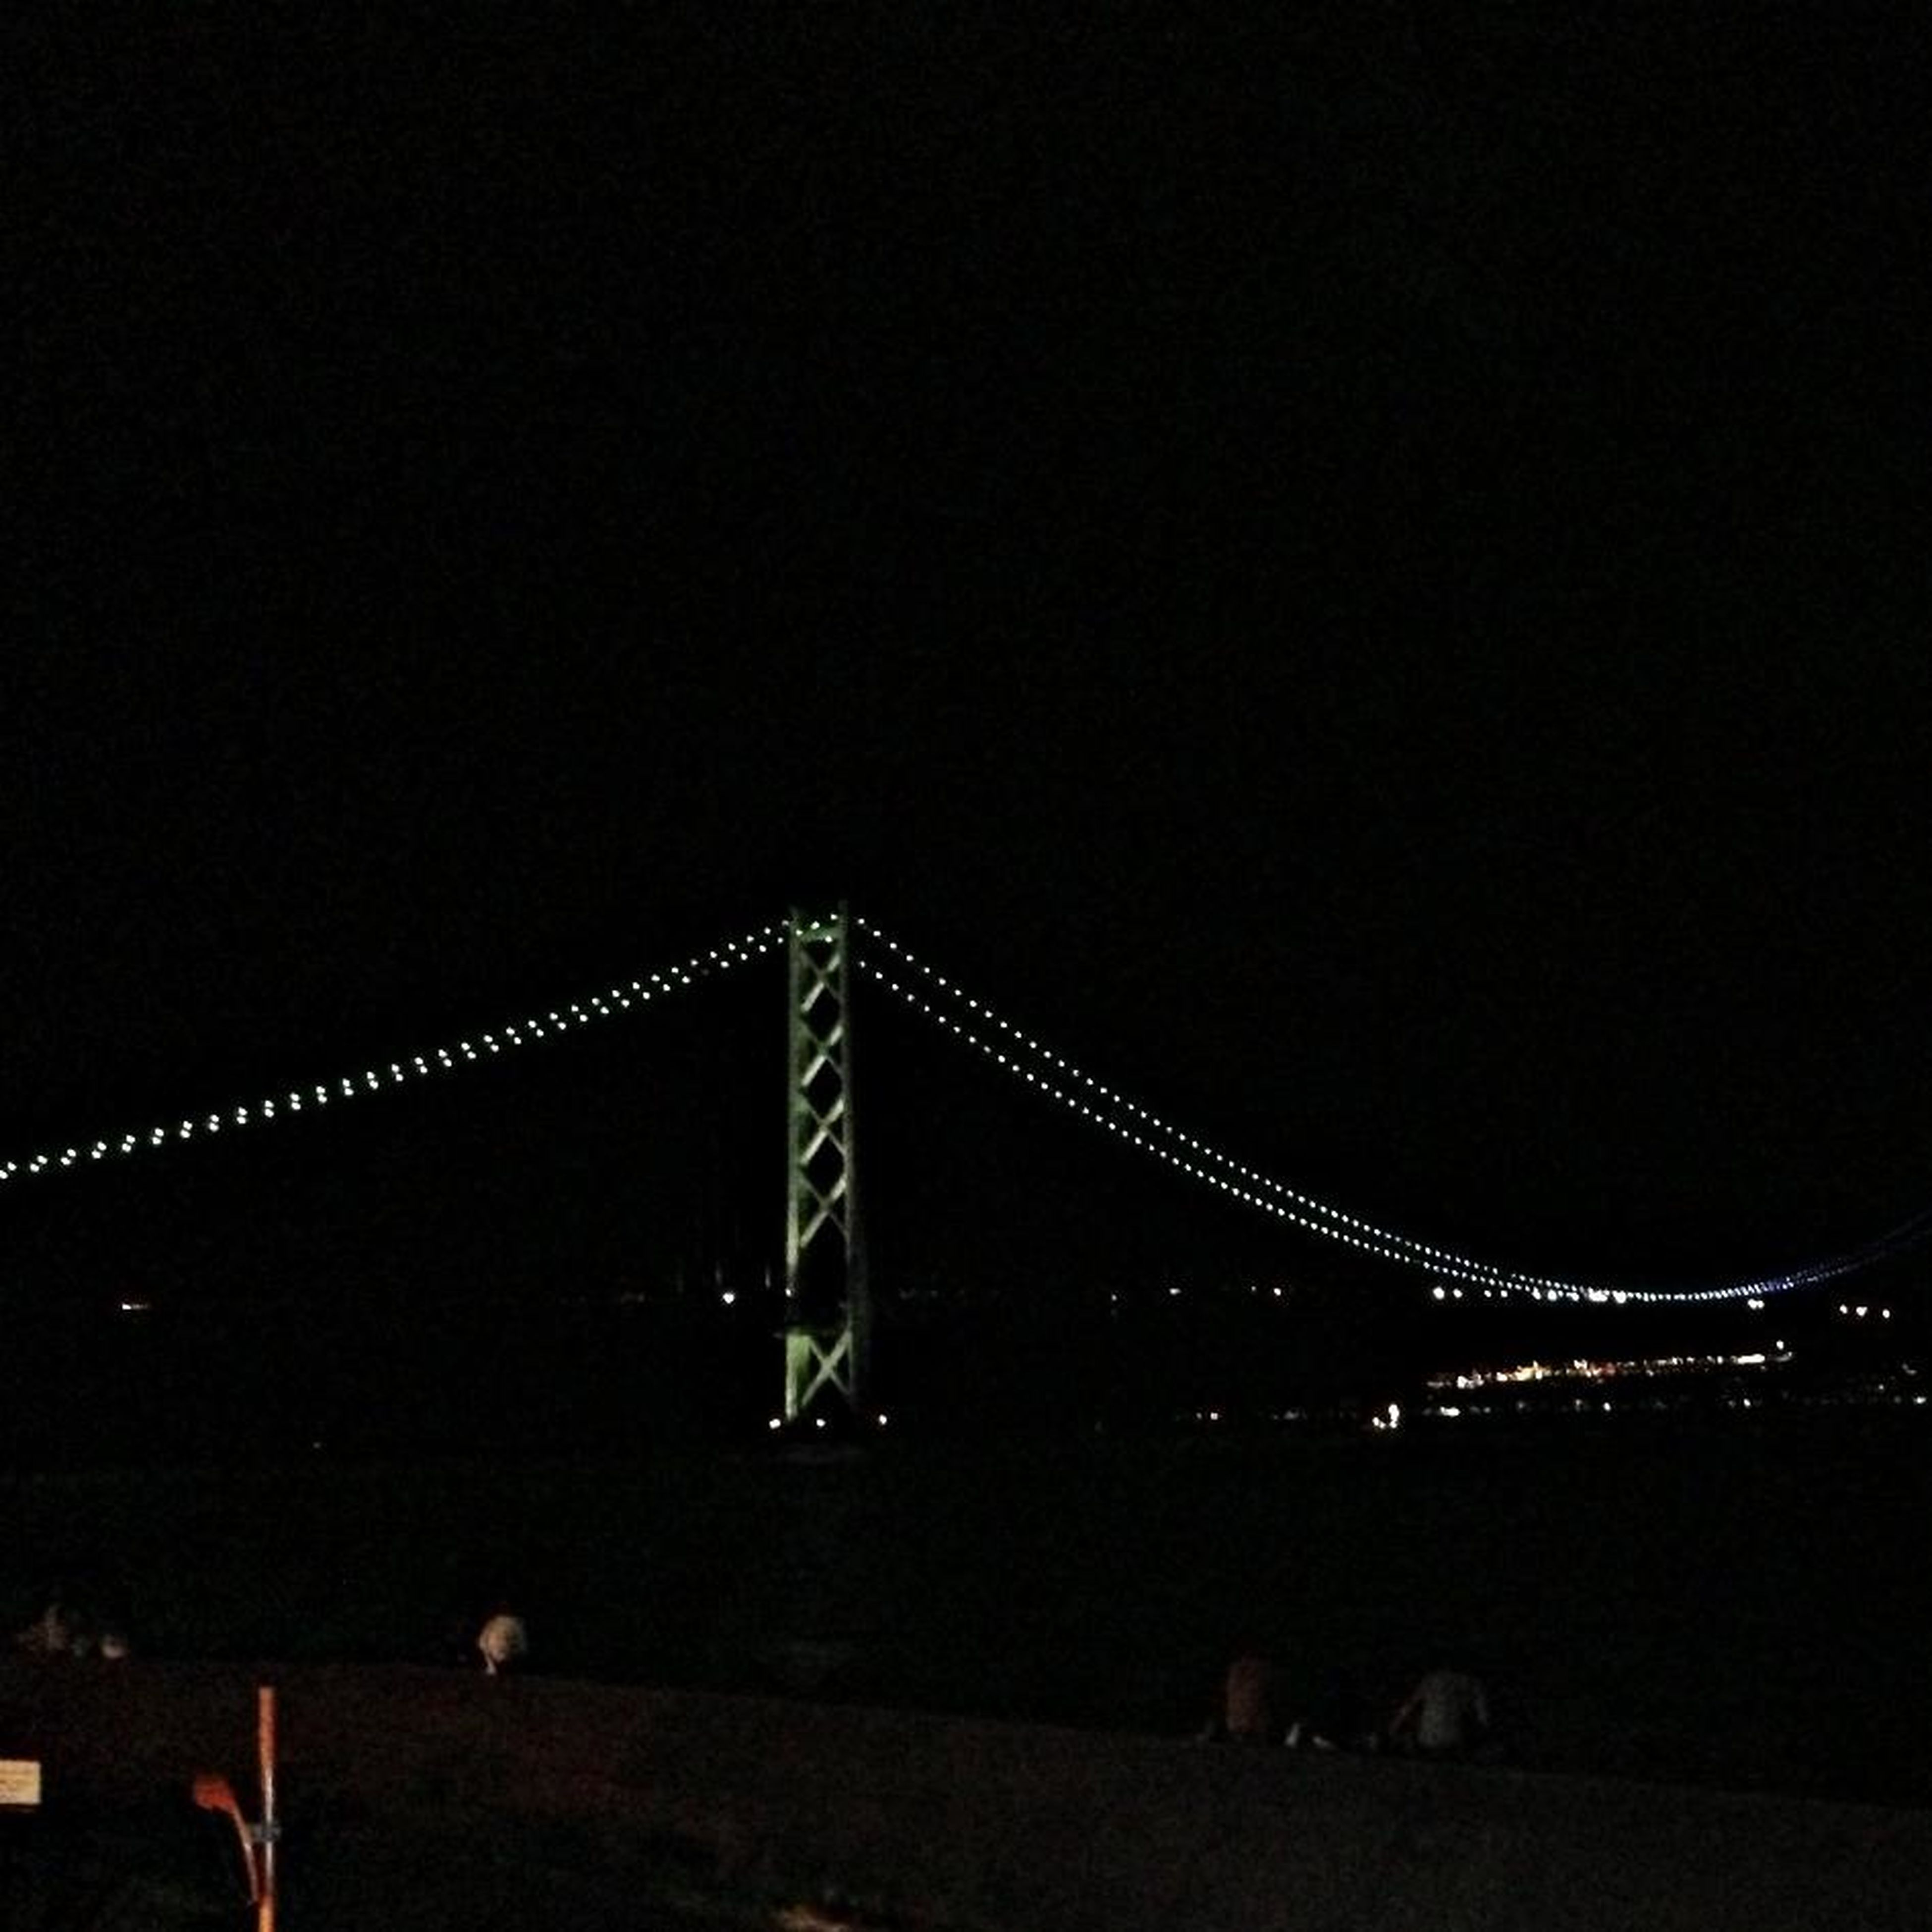 night, illuminated, copy space, clear sky, connection, bridge - man made structure, built structure, architecture, engineering, suspension bridge, metal, dark, outdoors, transportation, sky, dusk, low angle view, bridge, no people, travel destinations